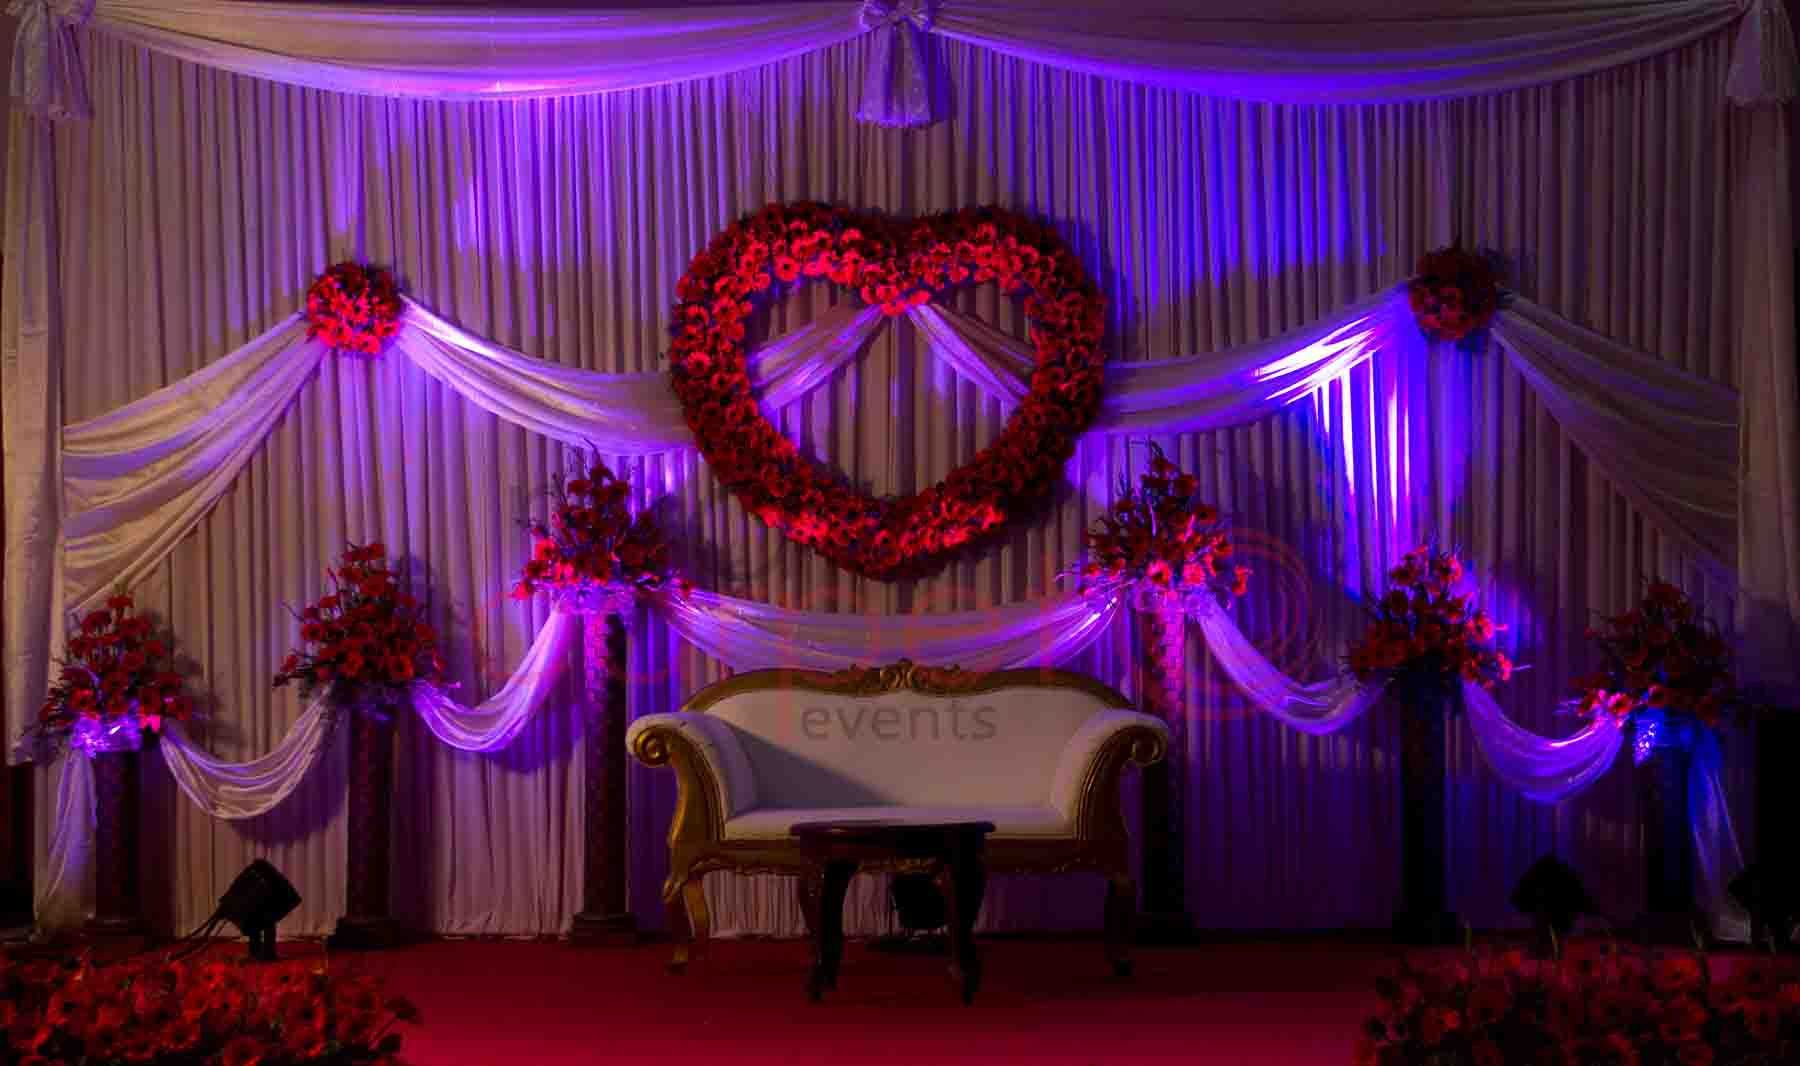 Indian wedding reception decorations valentine theme for 25th wedding anniversary stage decoration